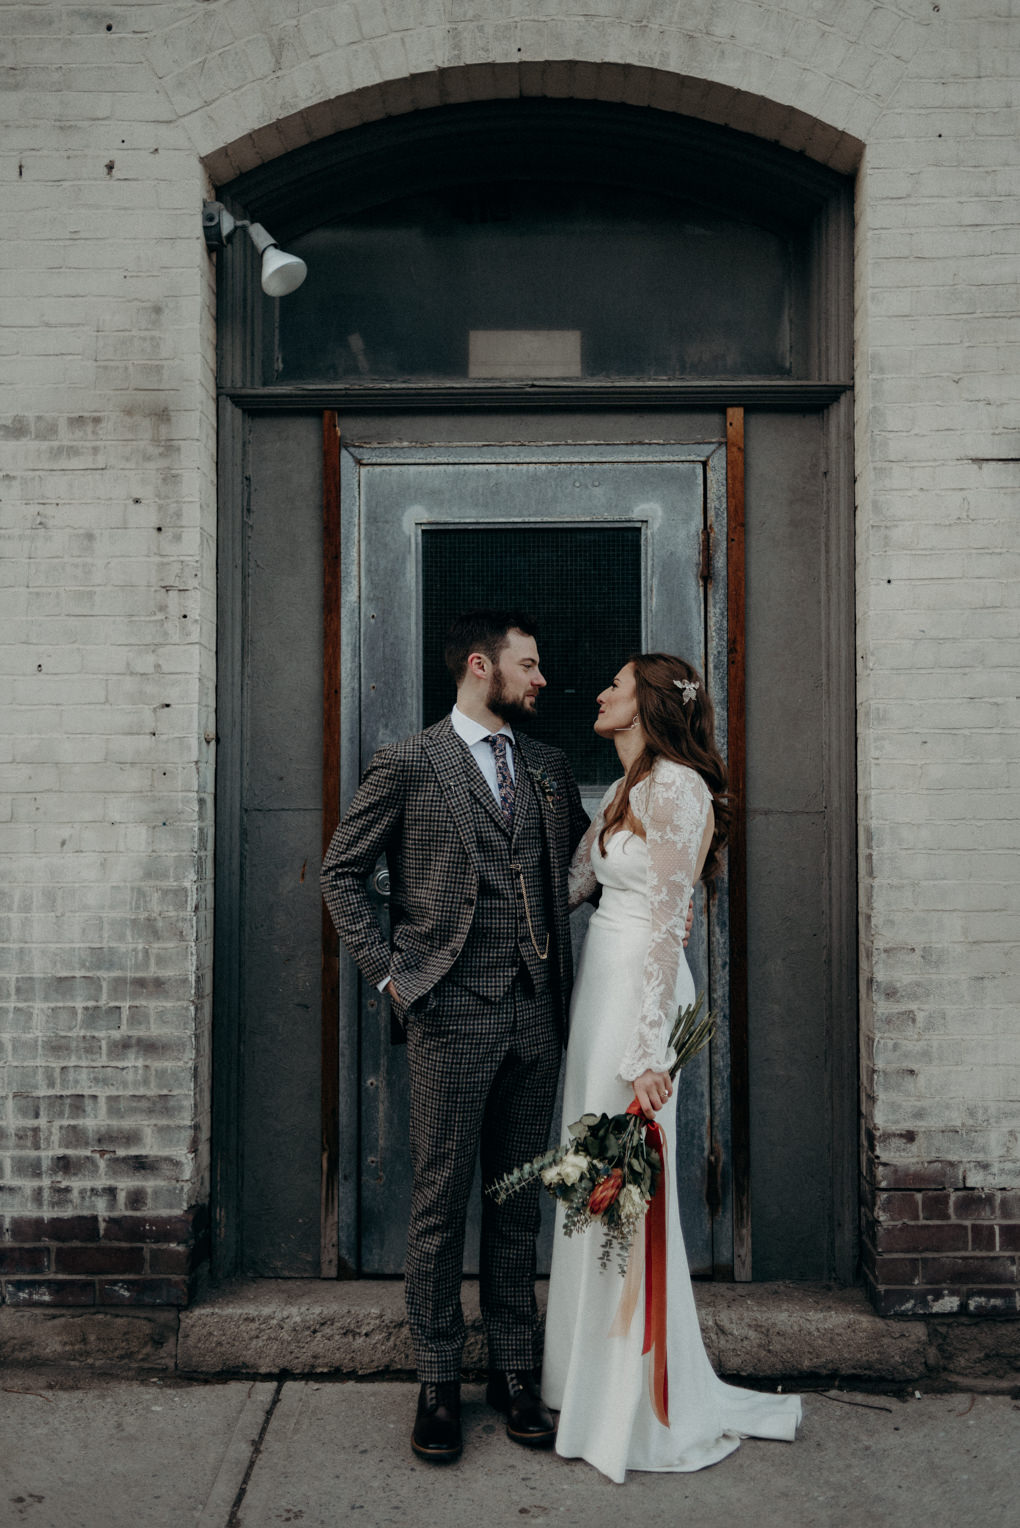 bride and groom standing in doorway of loft building